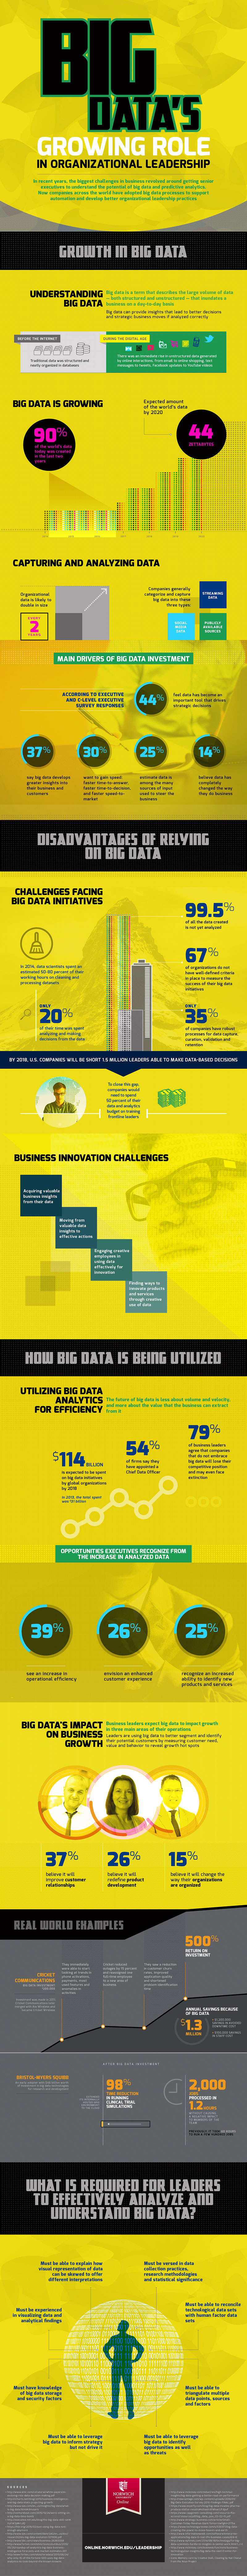 infographic about big data role in leadership